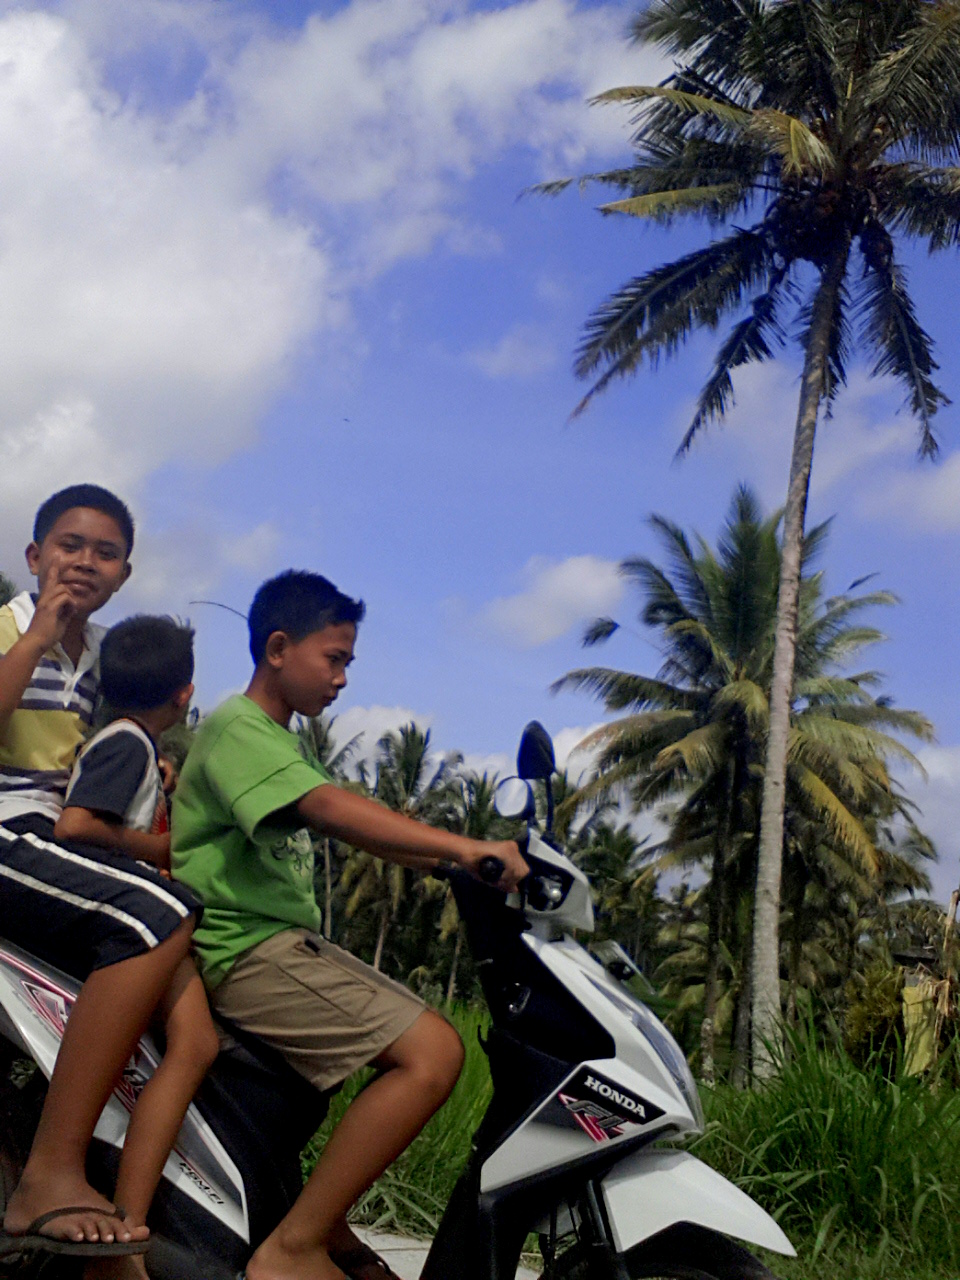 Boys on scooter behind villa